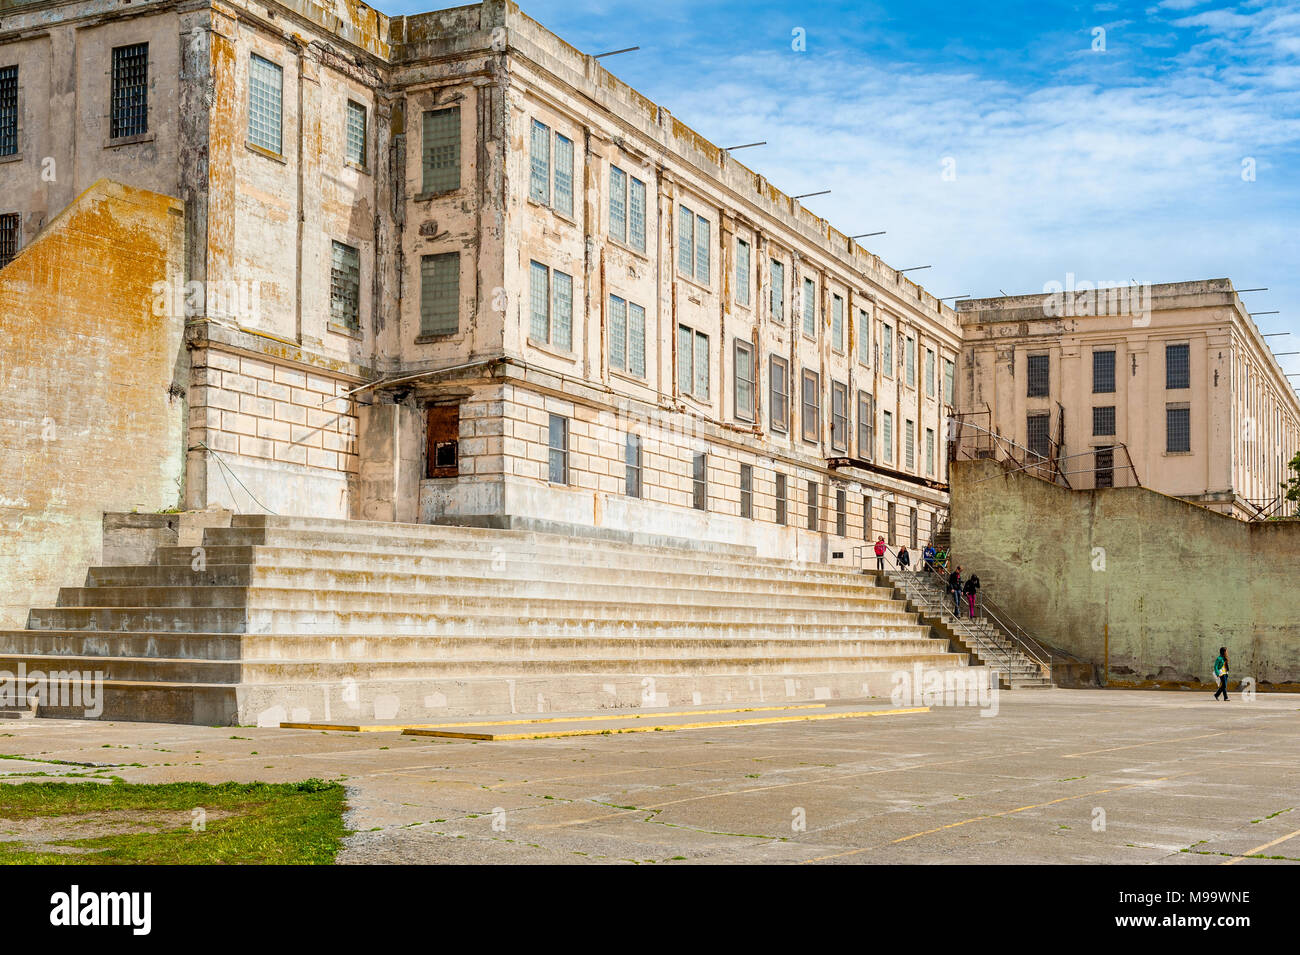 Main Cellhouse of former federal prison on Alcatraz Island in the San Francisco Bay, California, USA. - Stock Image